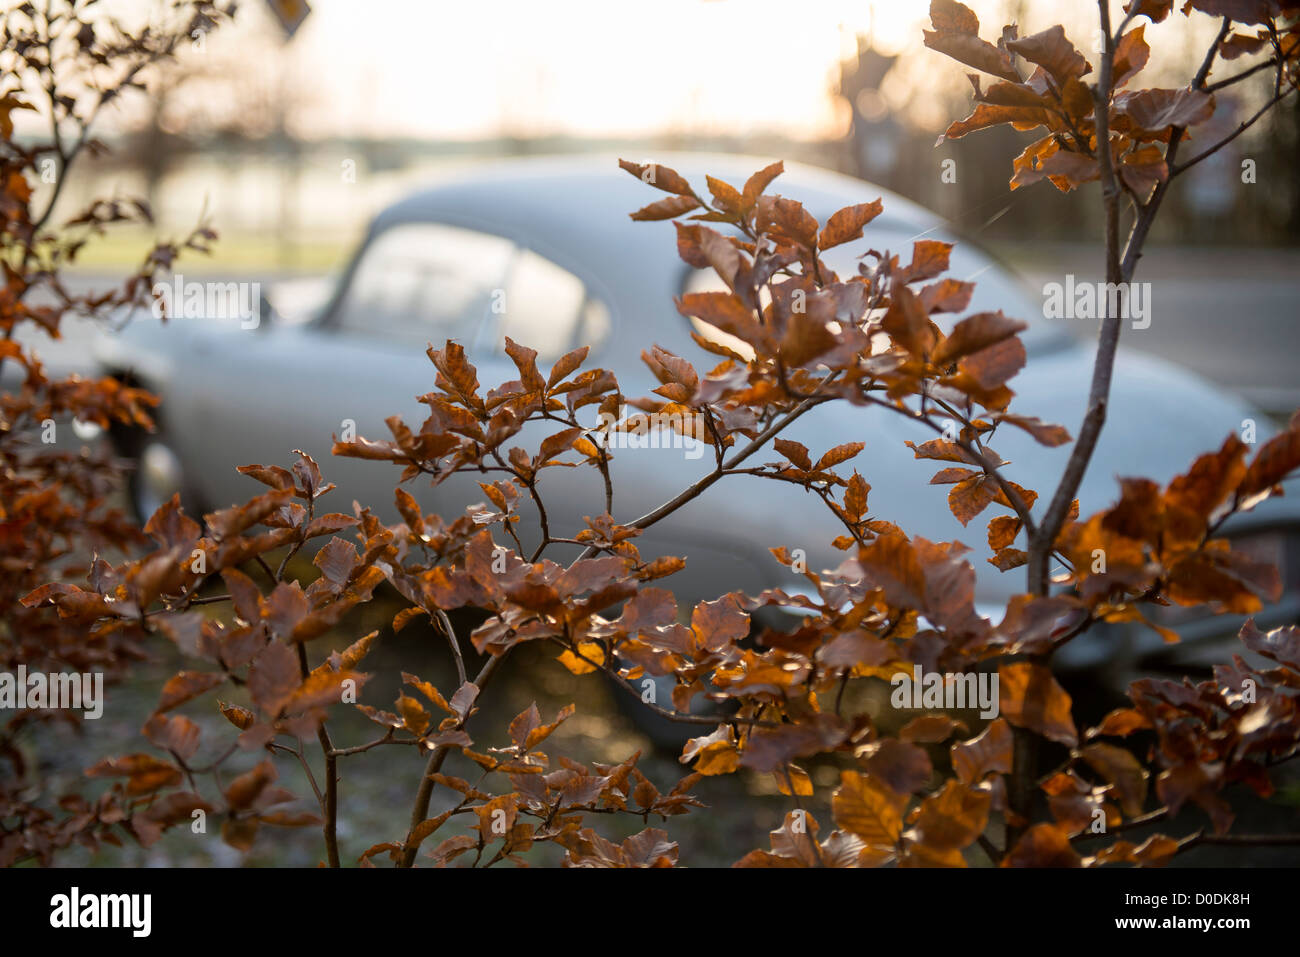 Panhard CD in automn - Stock Image